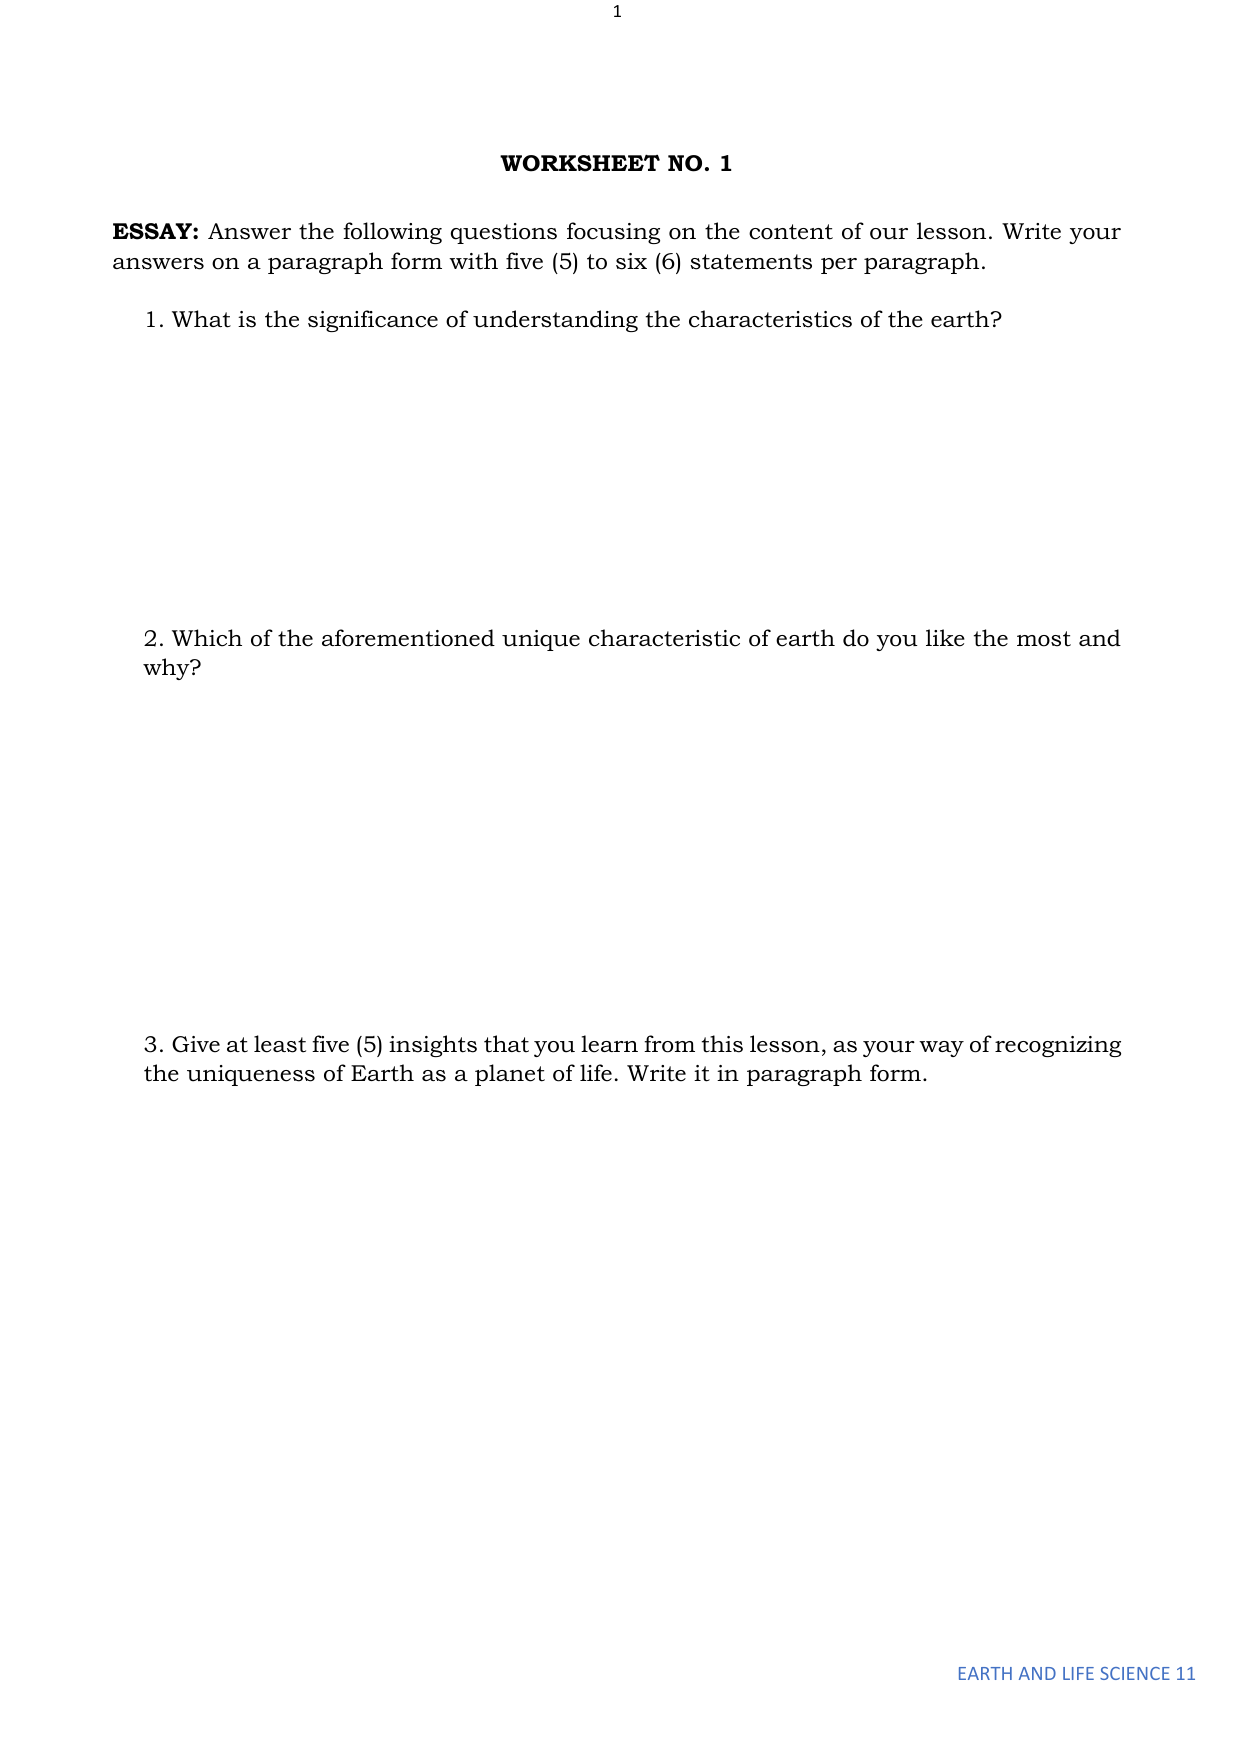 Worksheet In Earth And Life Science 11 Stem Final